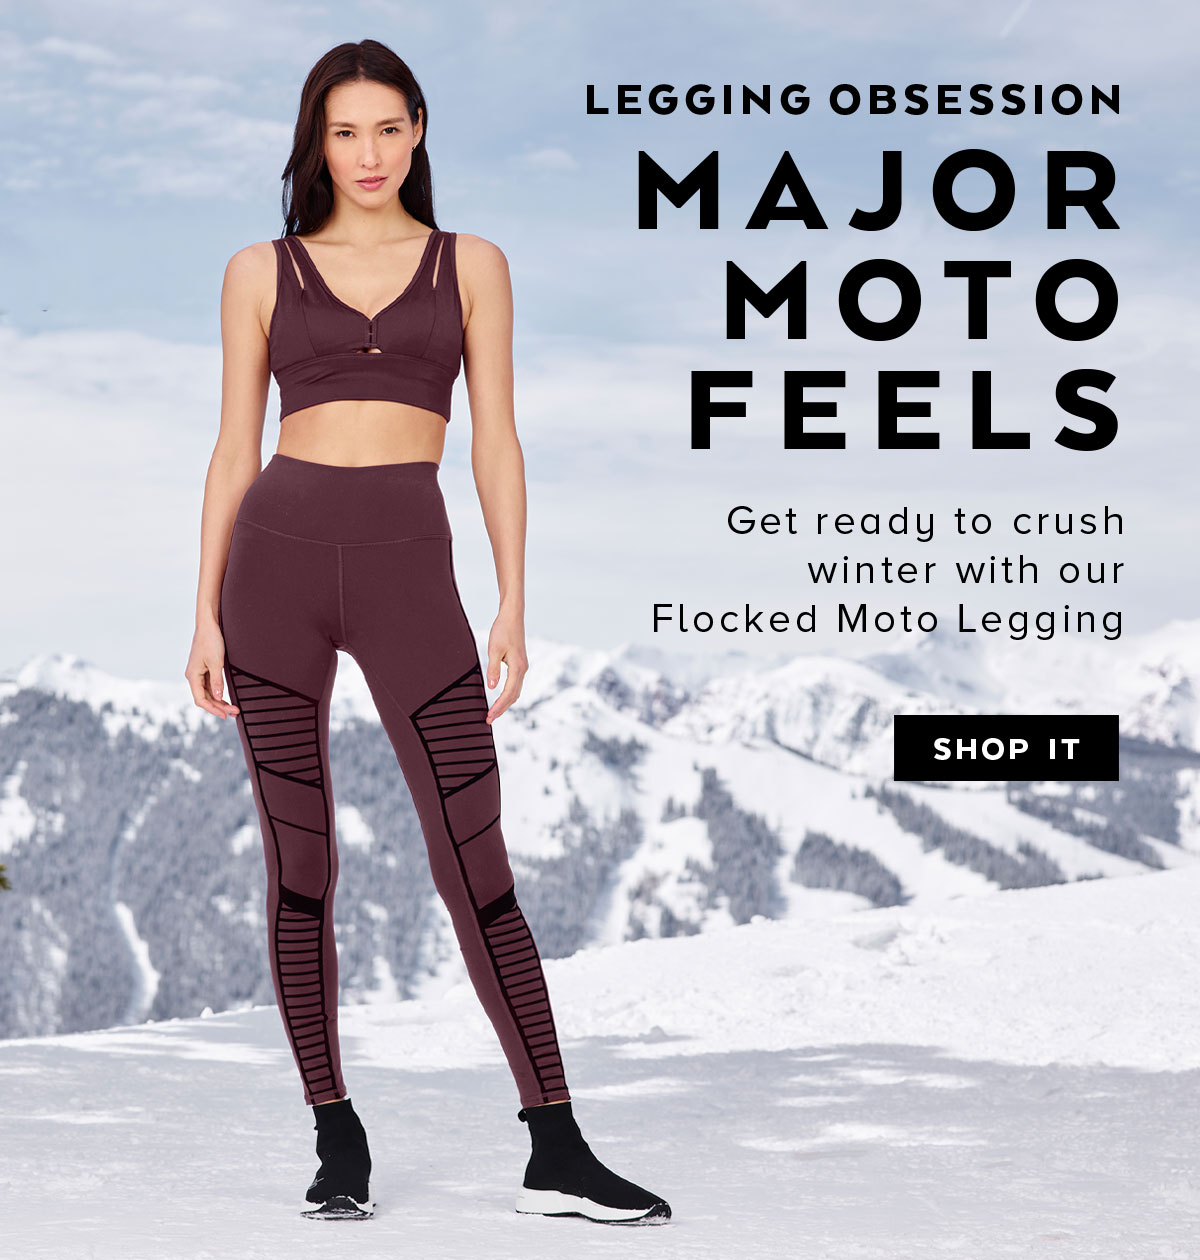 LEGGING OBSESSION MAJOR MOTO FEELS Get ready to crush winter with our Flocked Moto Legging. SHOP IT